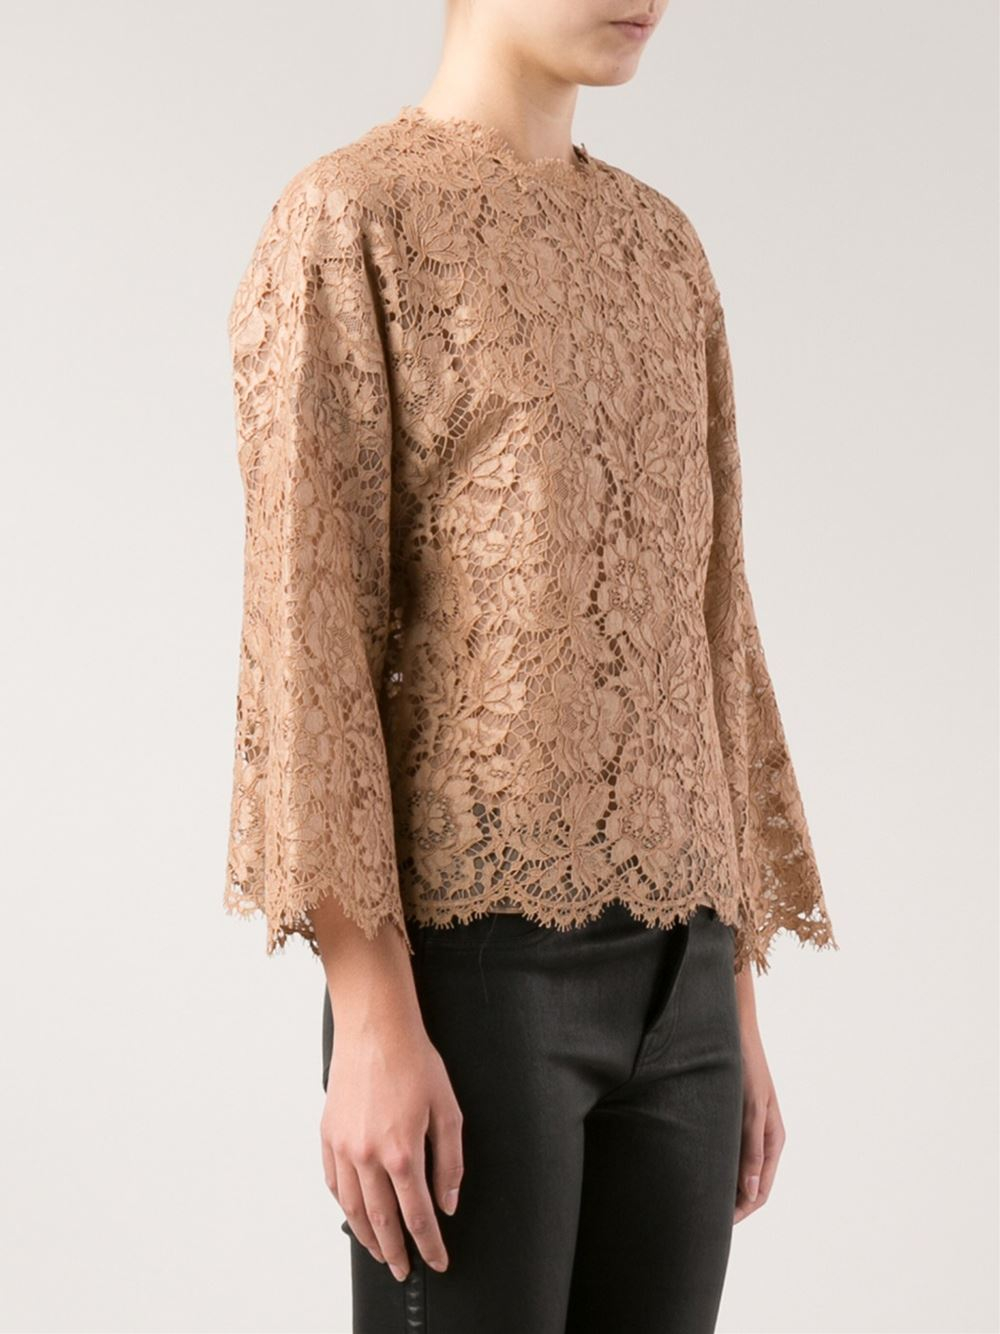 Valentino Lace Blouse In Brown Lyst